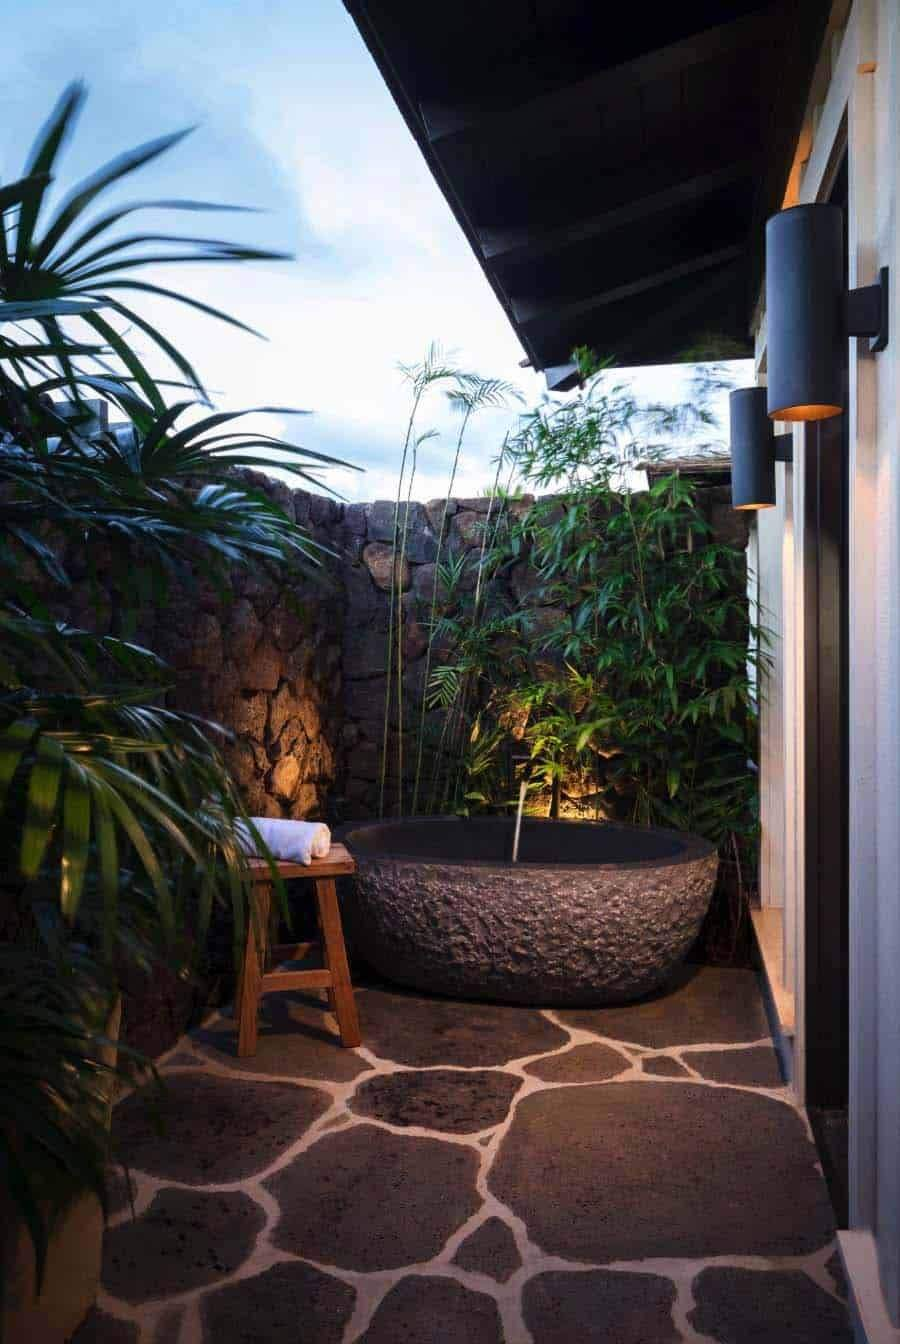 Badewanne Outdoor Garten Das Beste Von 28 Most Incredible Outdoor Tub Ideas for An Invigorating